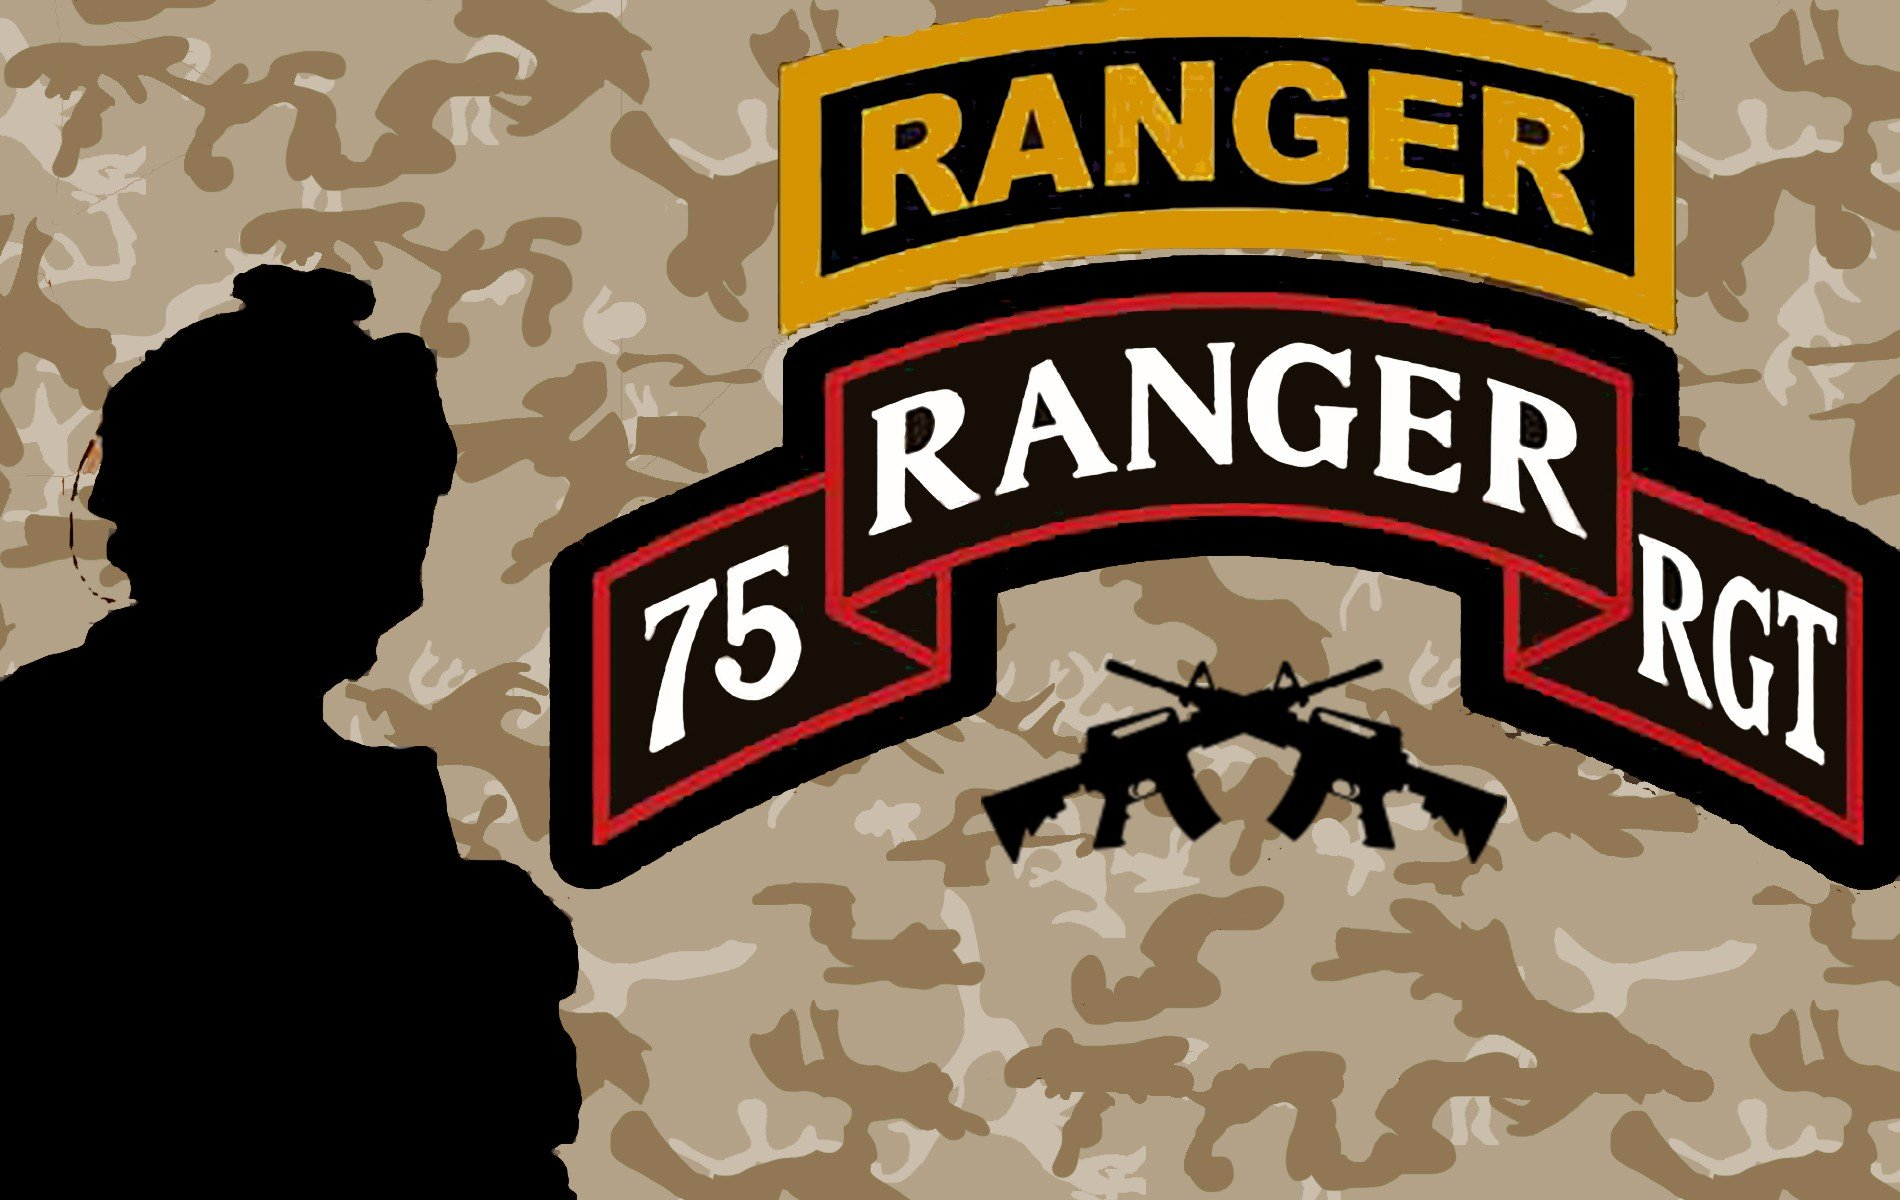 Army Rangers Wallpaper: United States Army Rangers, Military HD Wallpapers